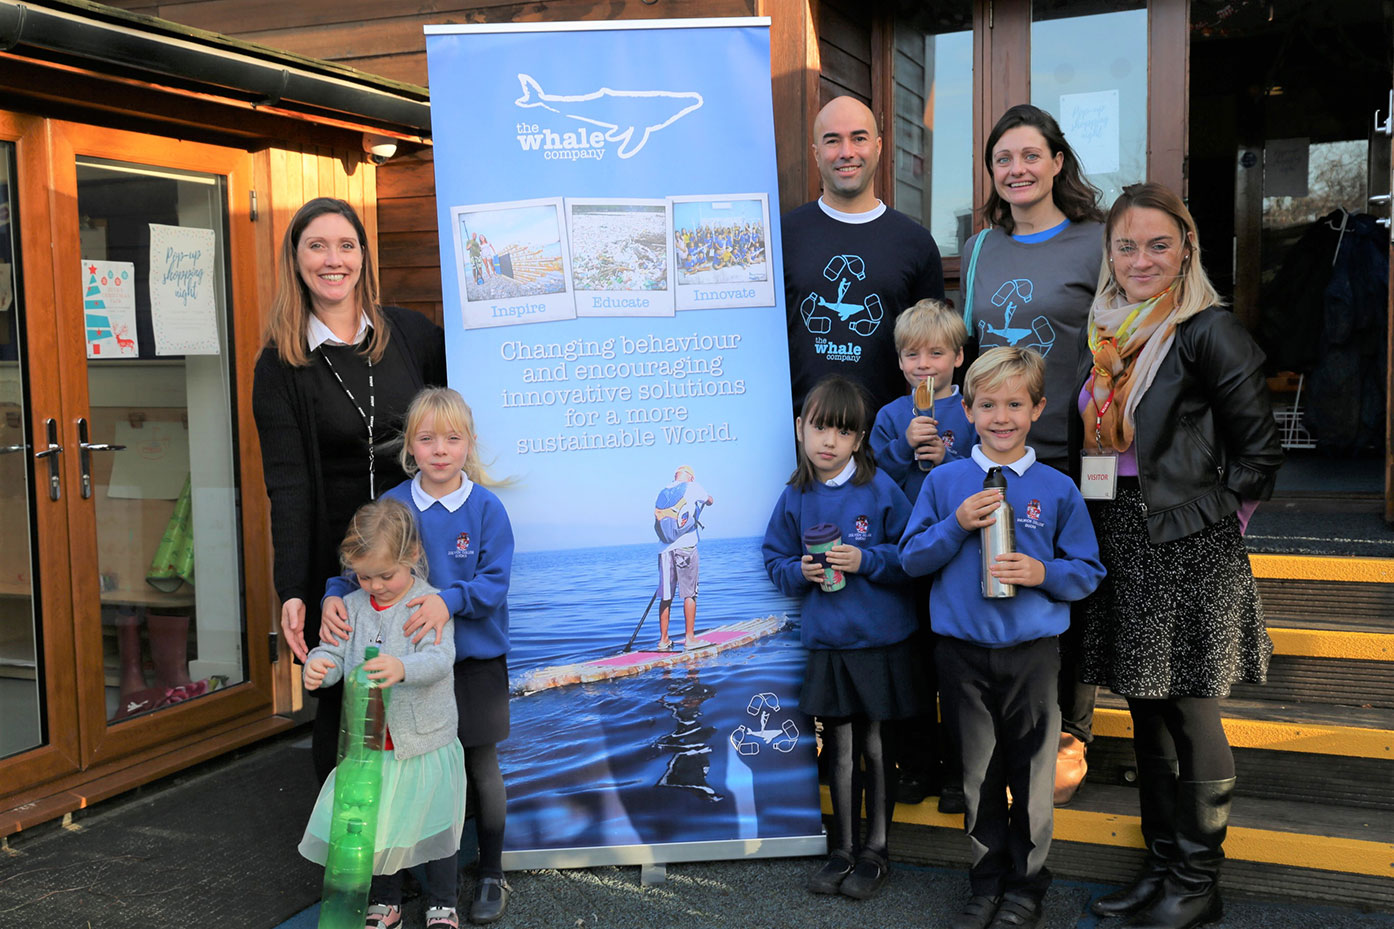 School Council choose to support The Whale Company